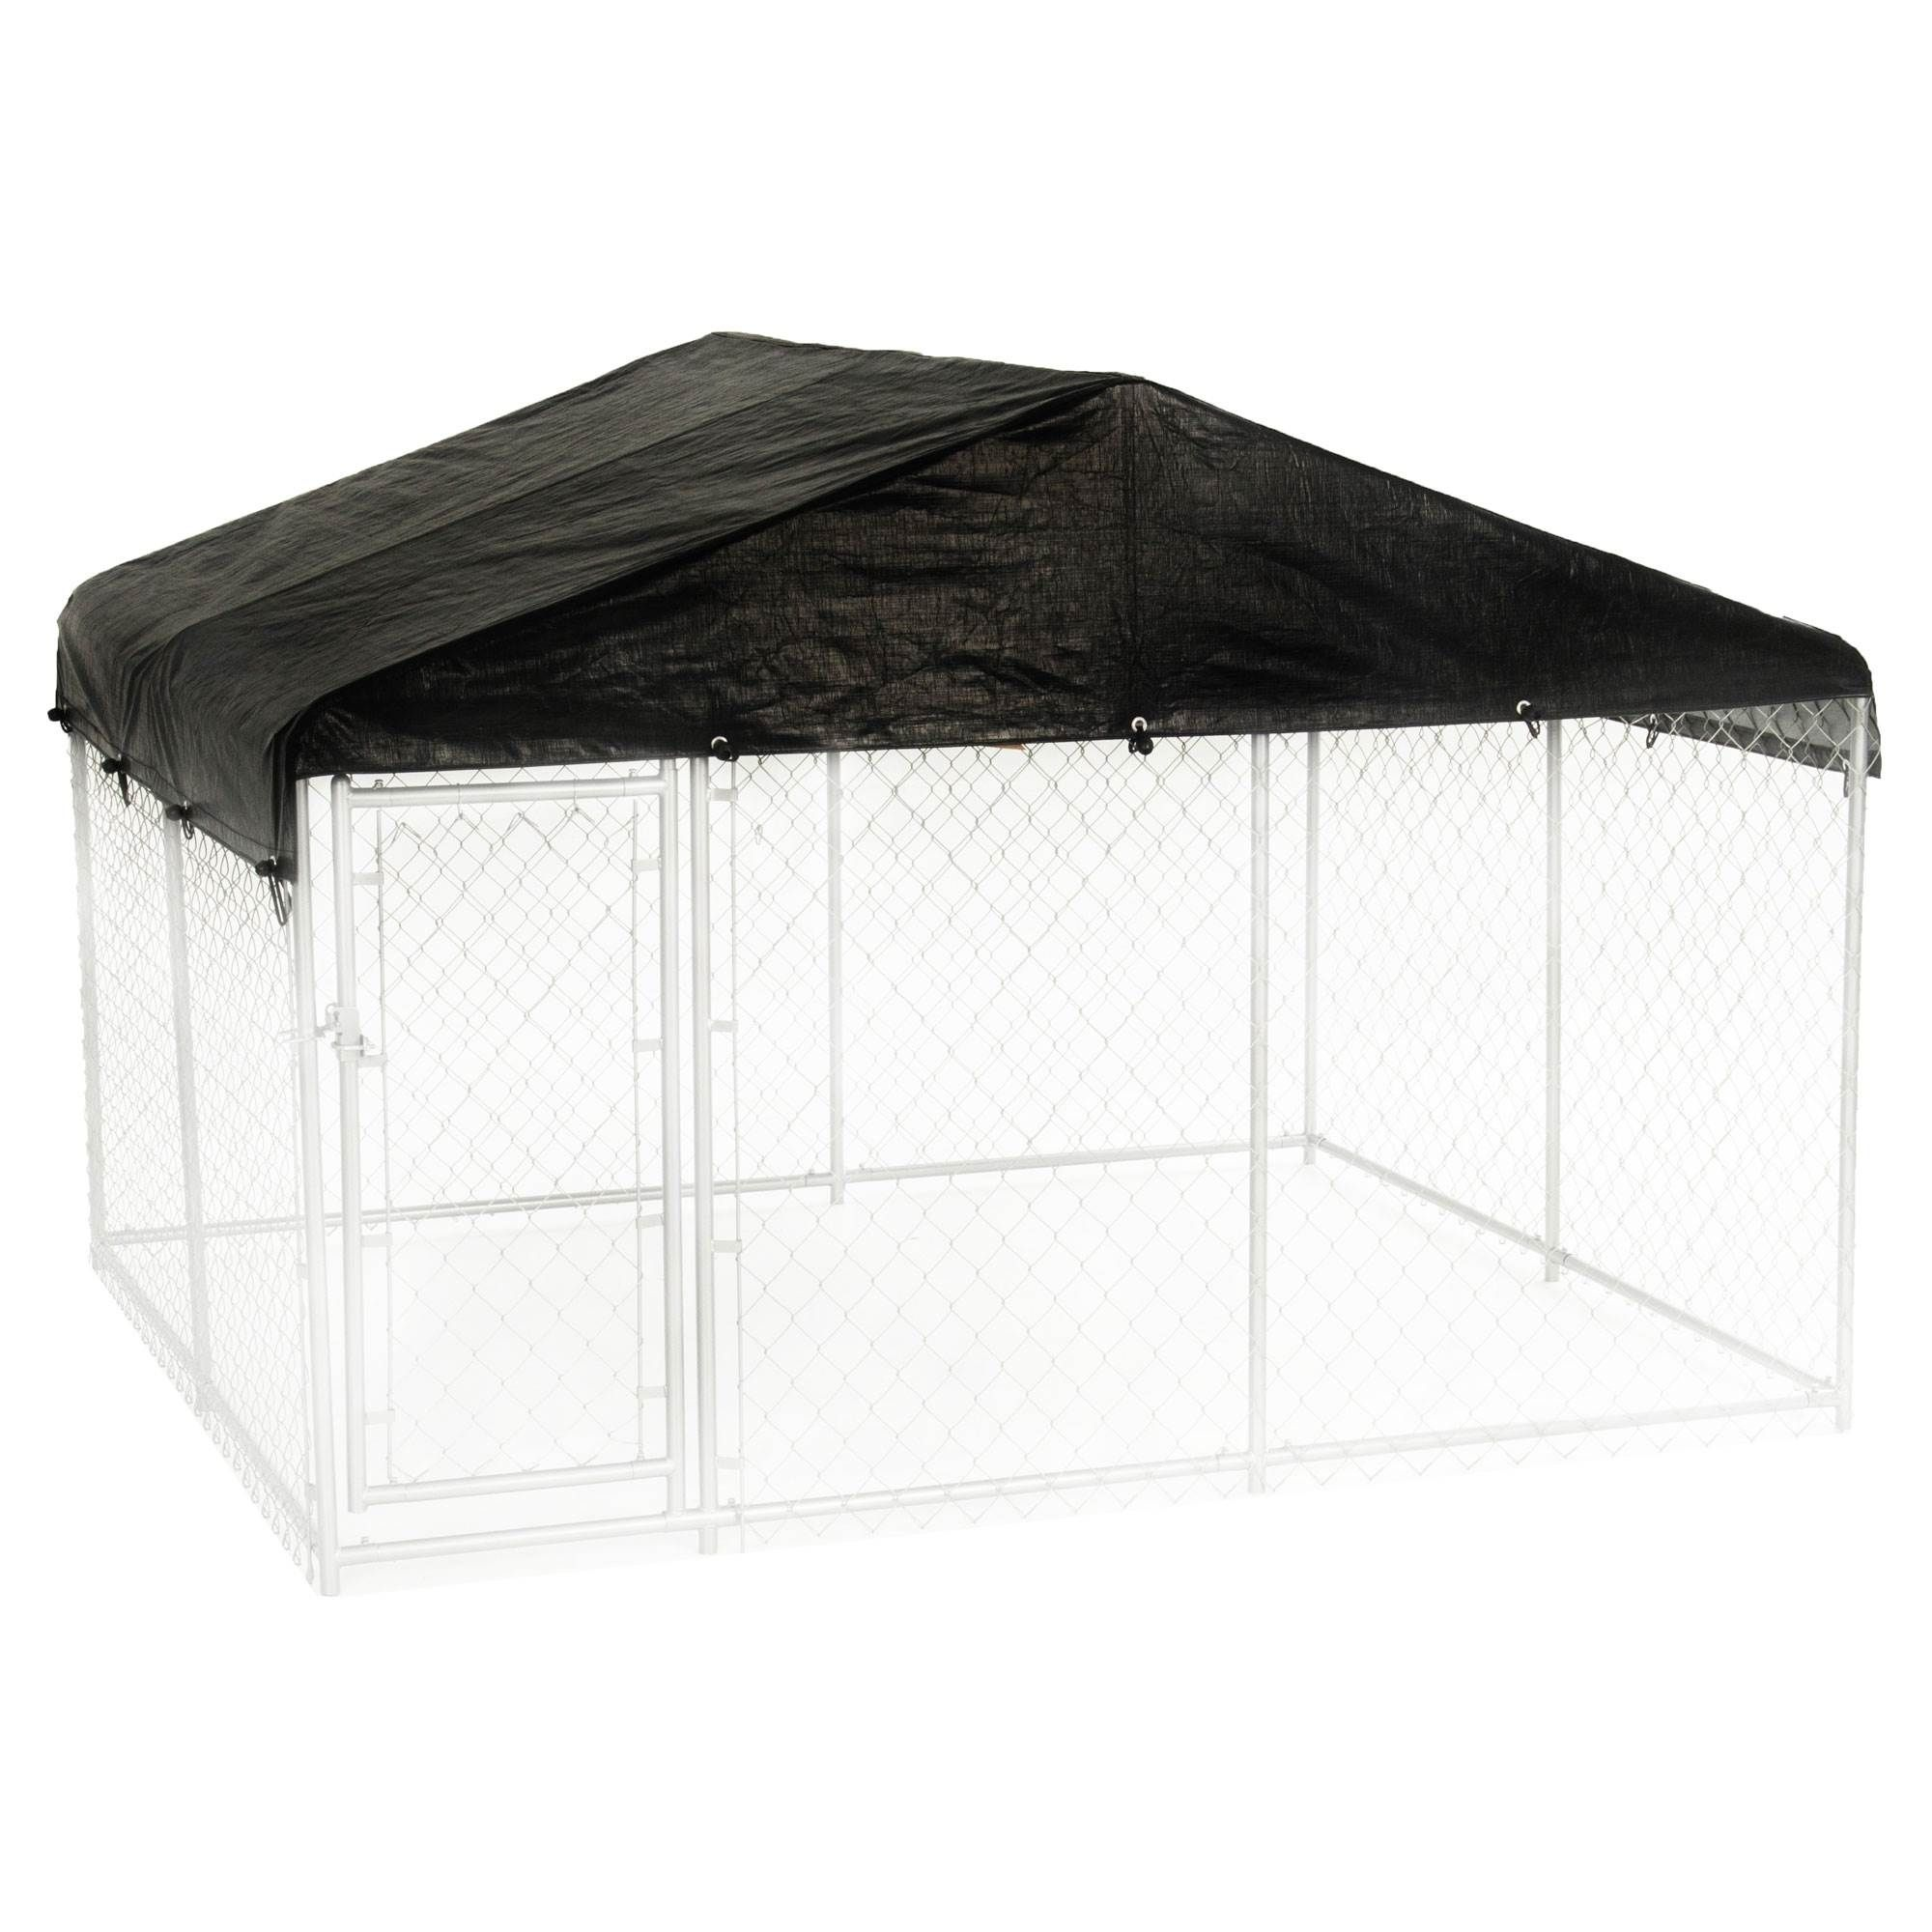 Pets Chain Link Dog Kennel Dog Kennel Roof Dog Kennel Cover